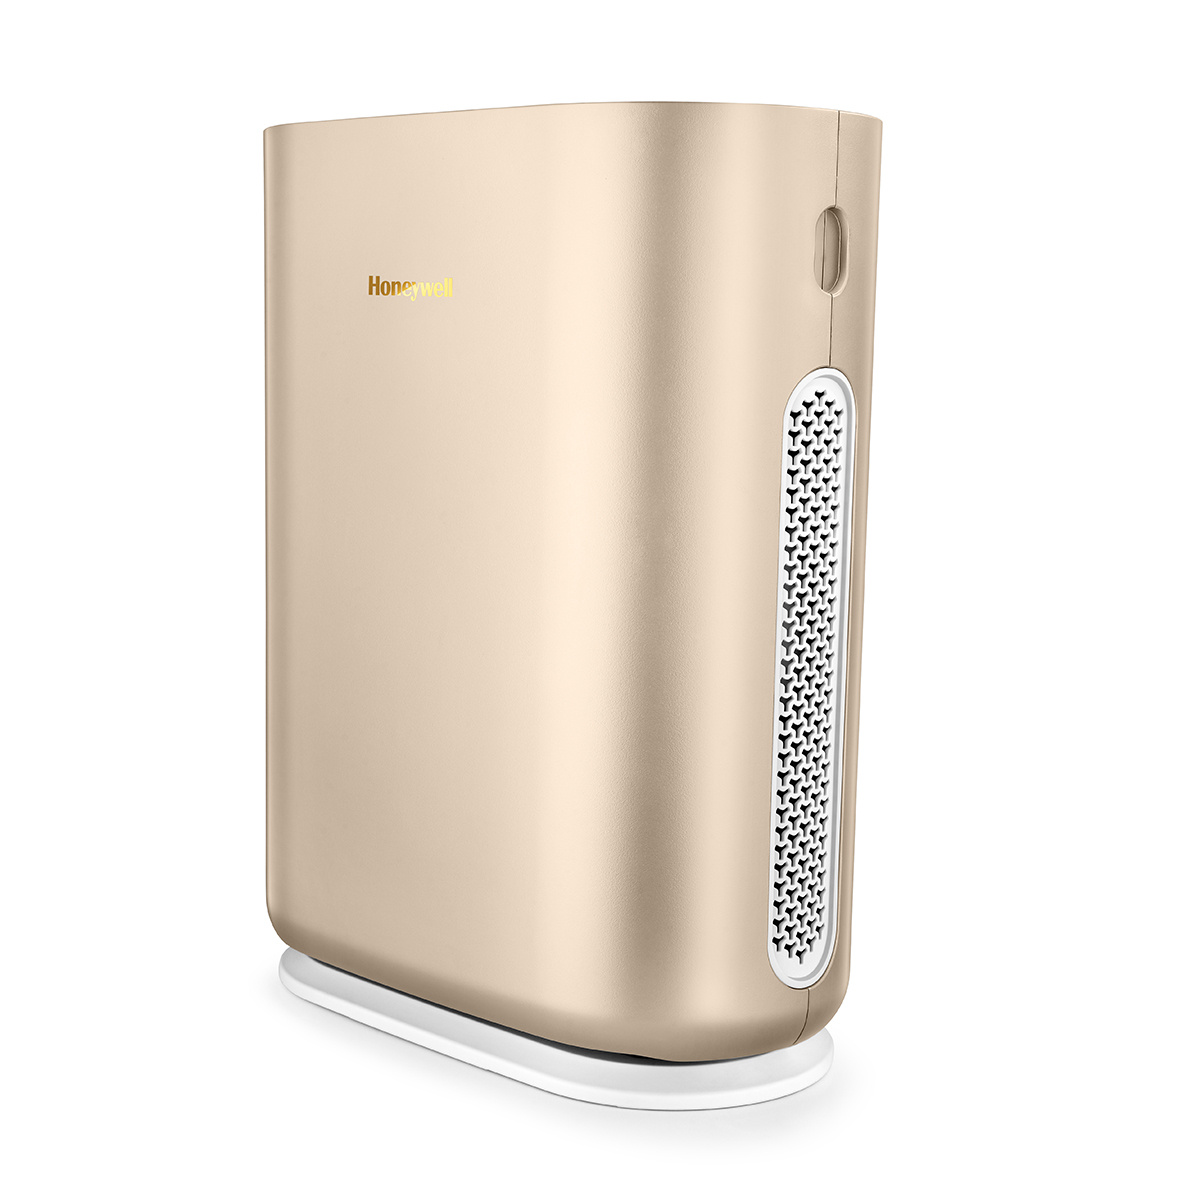 Honey Well Air Touch i9